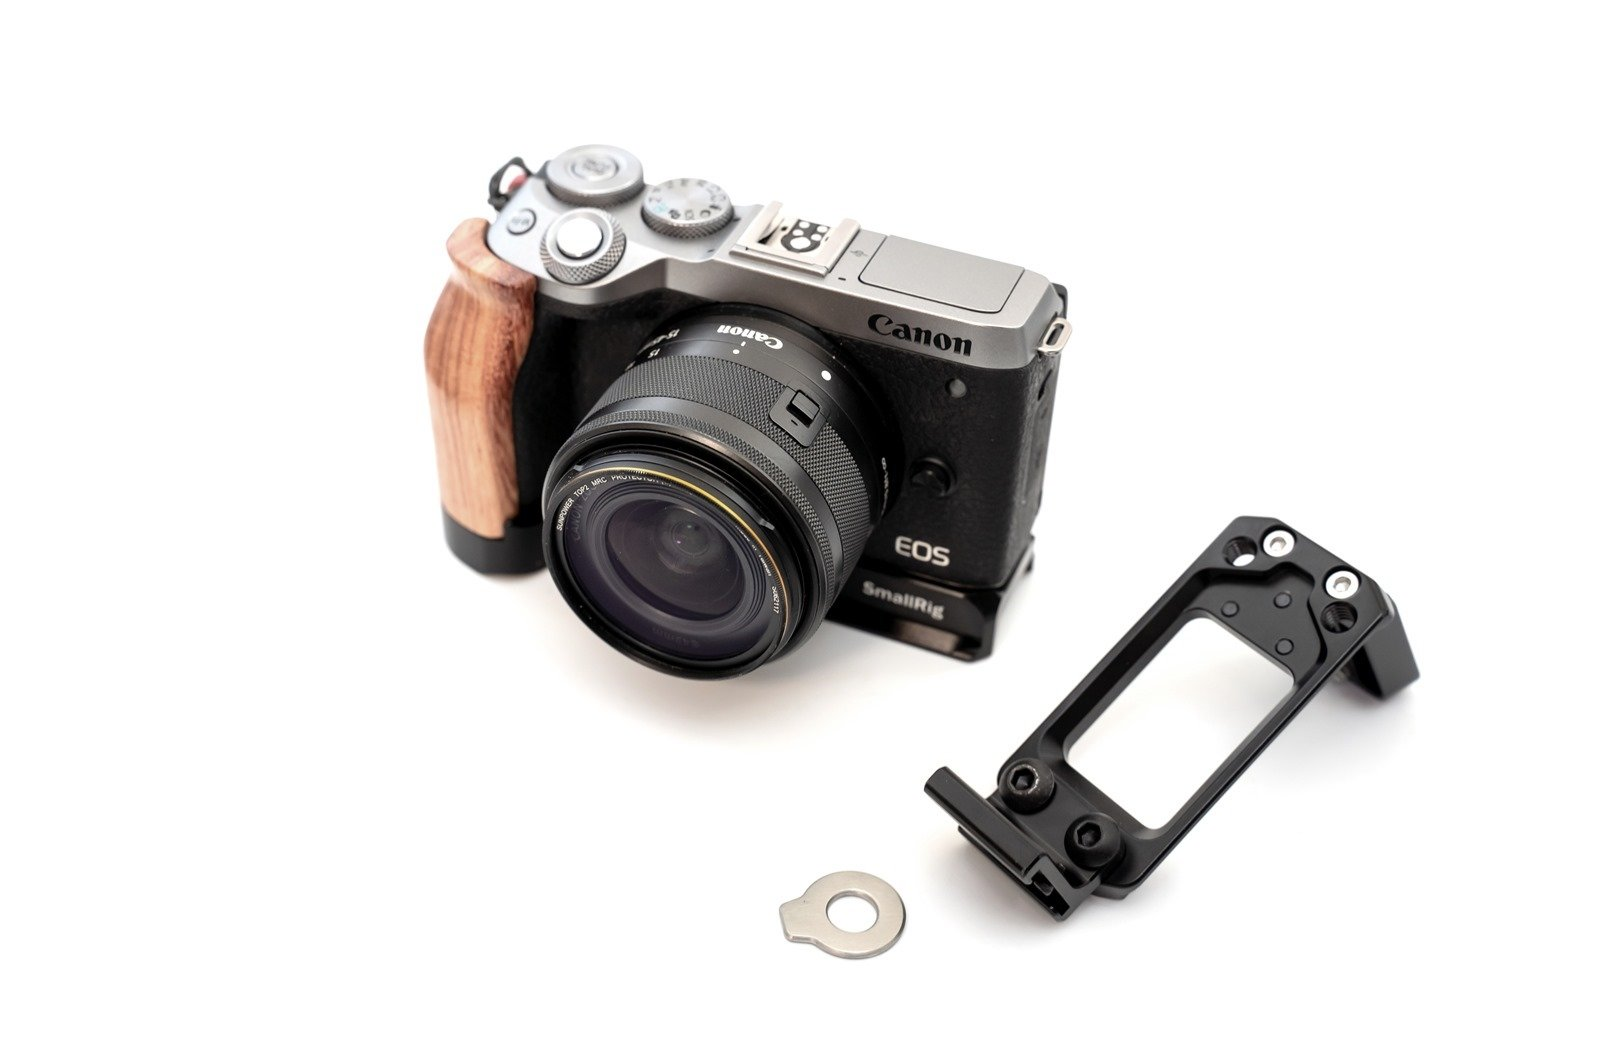 讓 EOS M6 Mark II 更好用的 SmallRig L 支架配件開箱分享 (SmallRig L-Bracket for Canon EOS M6 Mark II LCC2516) @3C 達人廖阿輝